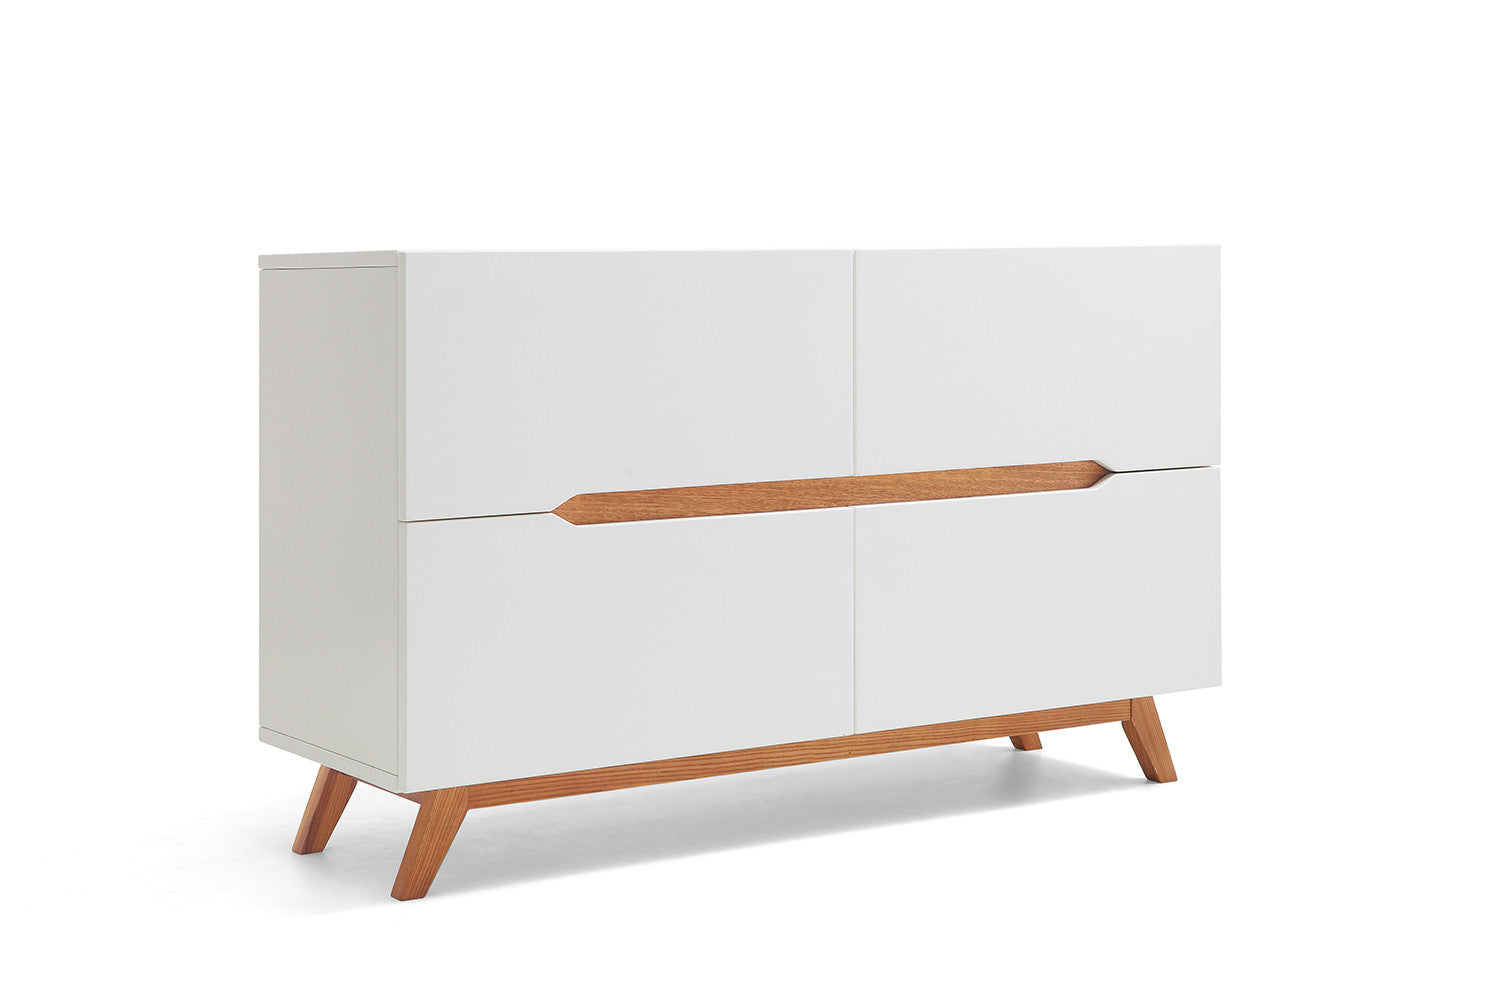 Commode design scandinave blanche et bois albana dewarens - Commode design scandinave ...